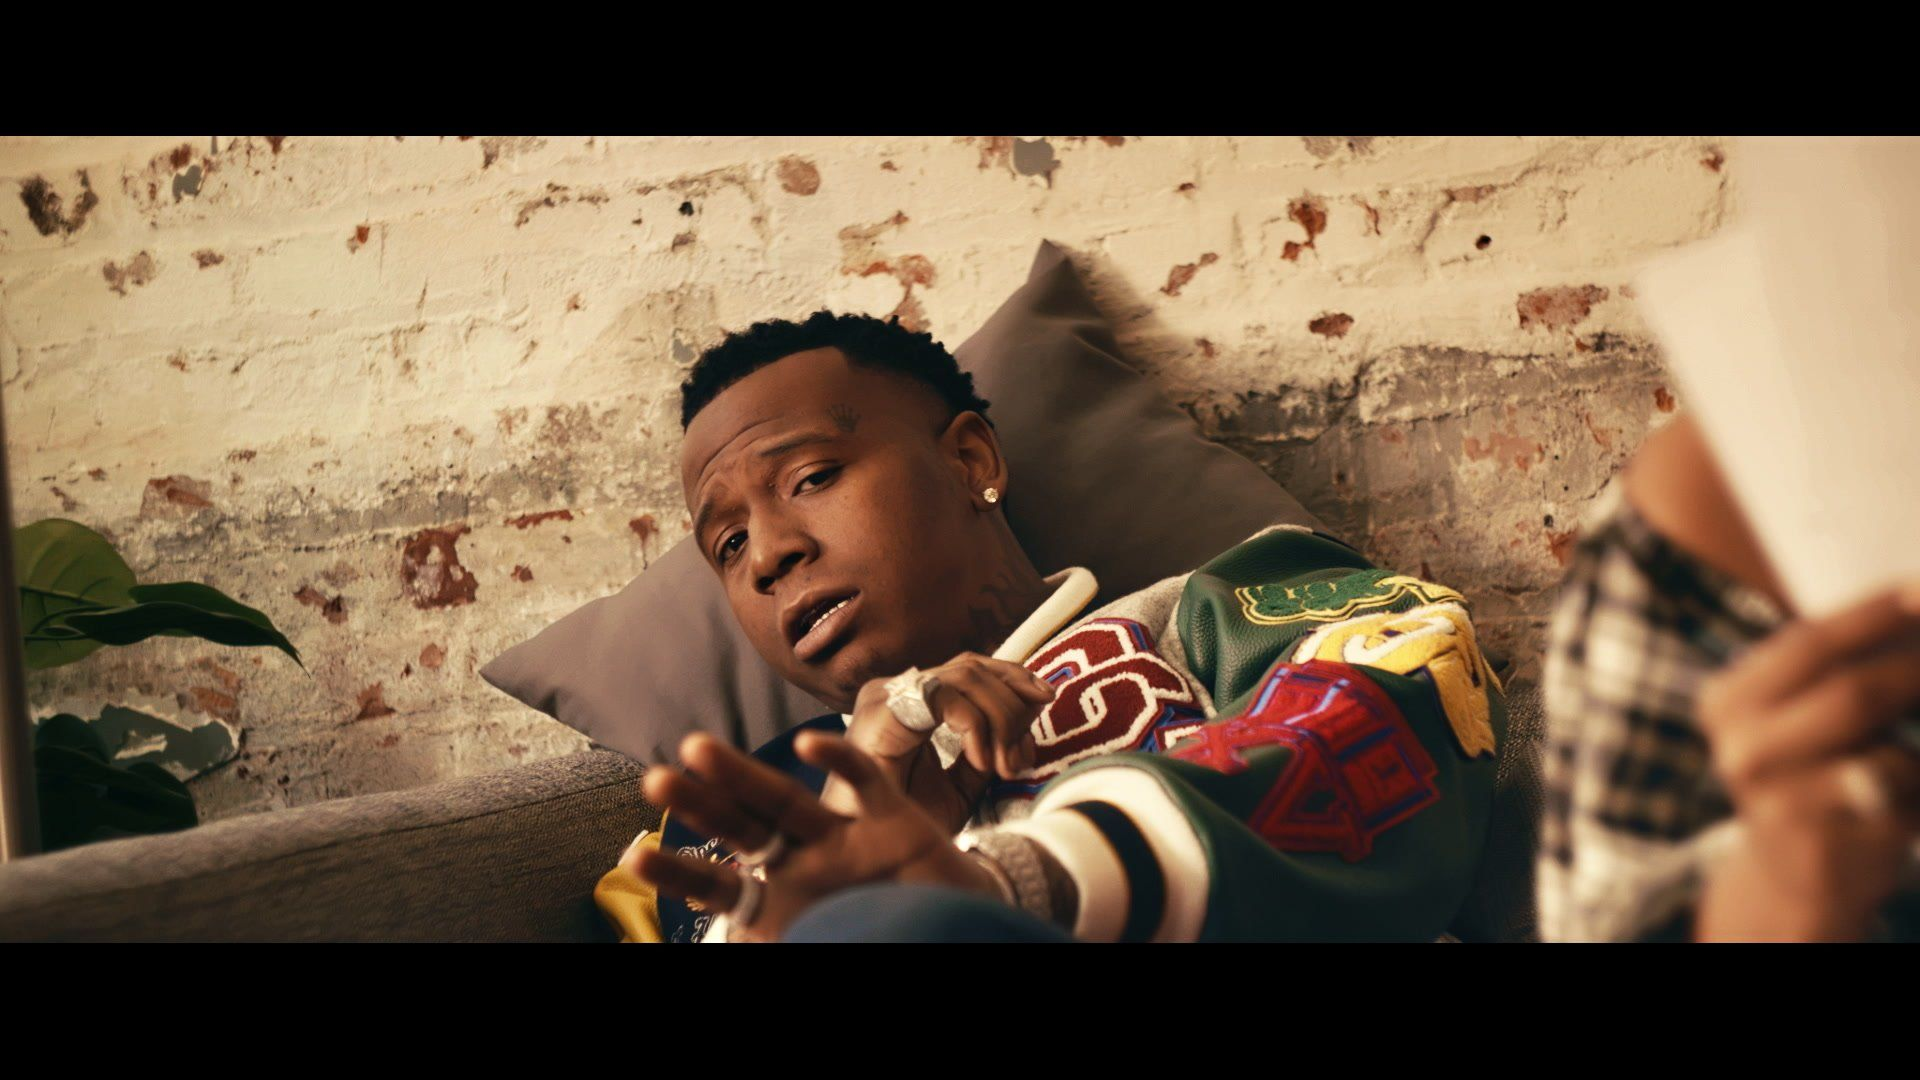 Doin' It - Moneybagg Yo - Vevo